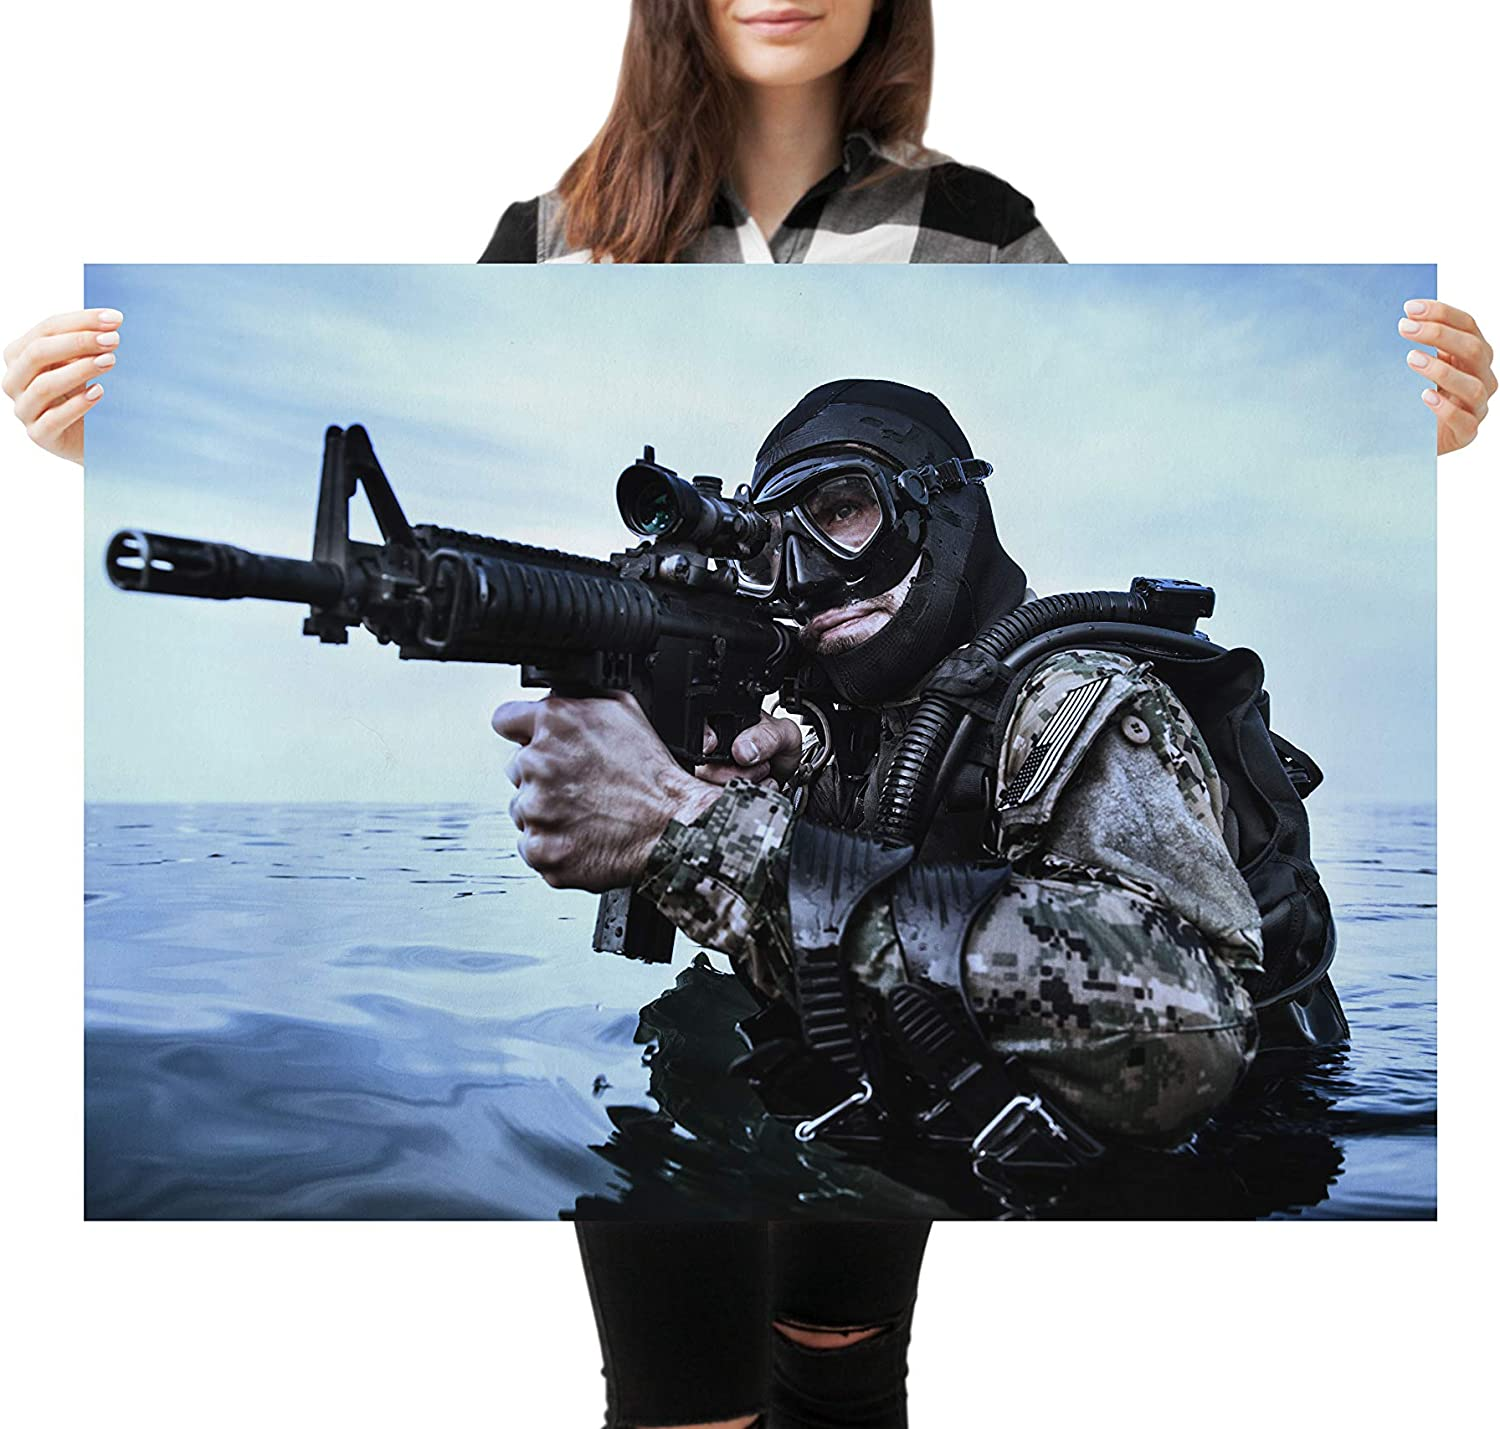 A1 Awesome Navy Seal Frogman Poster Size 60 x 90cm Military Poster Gift #16571